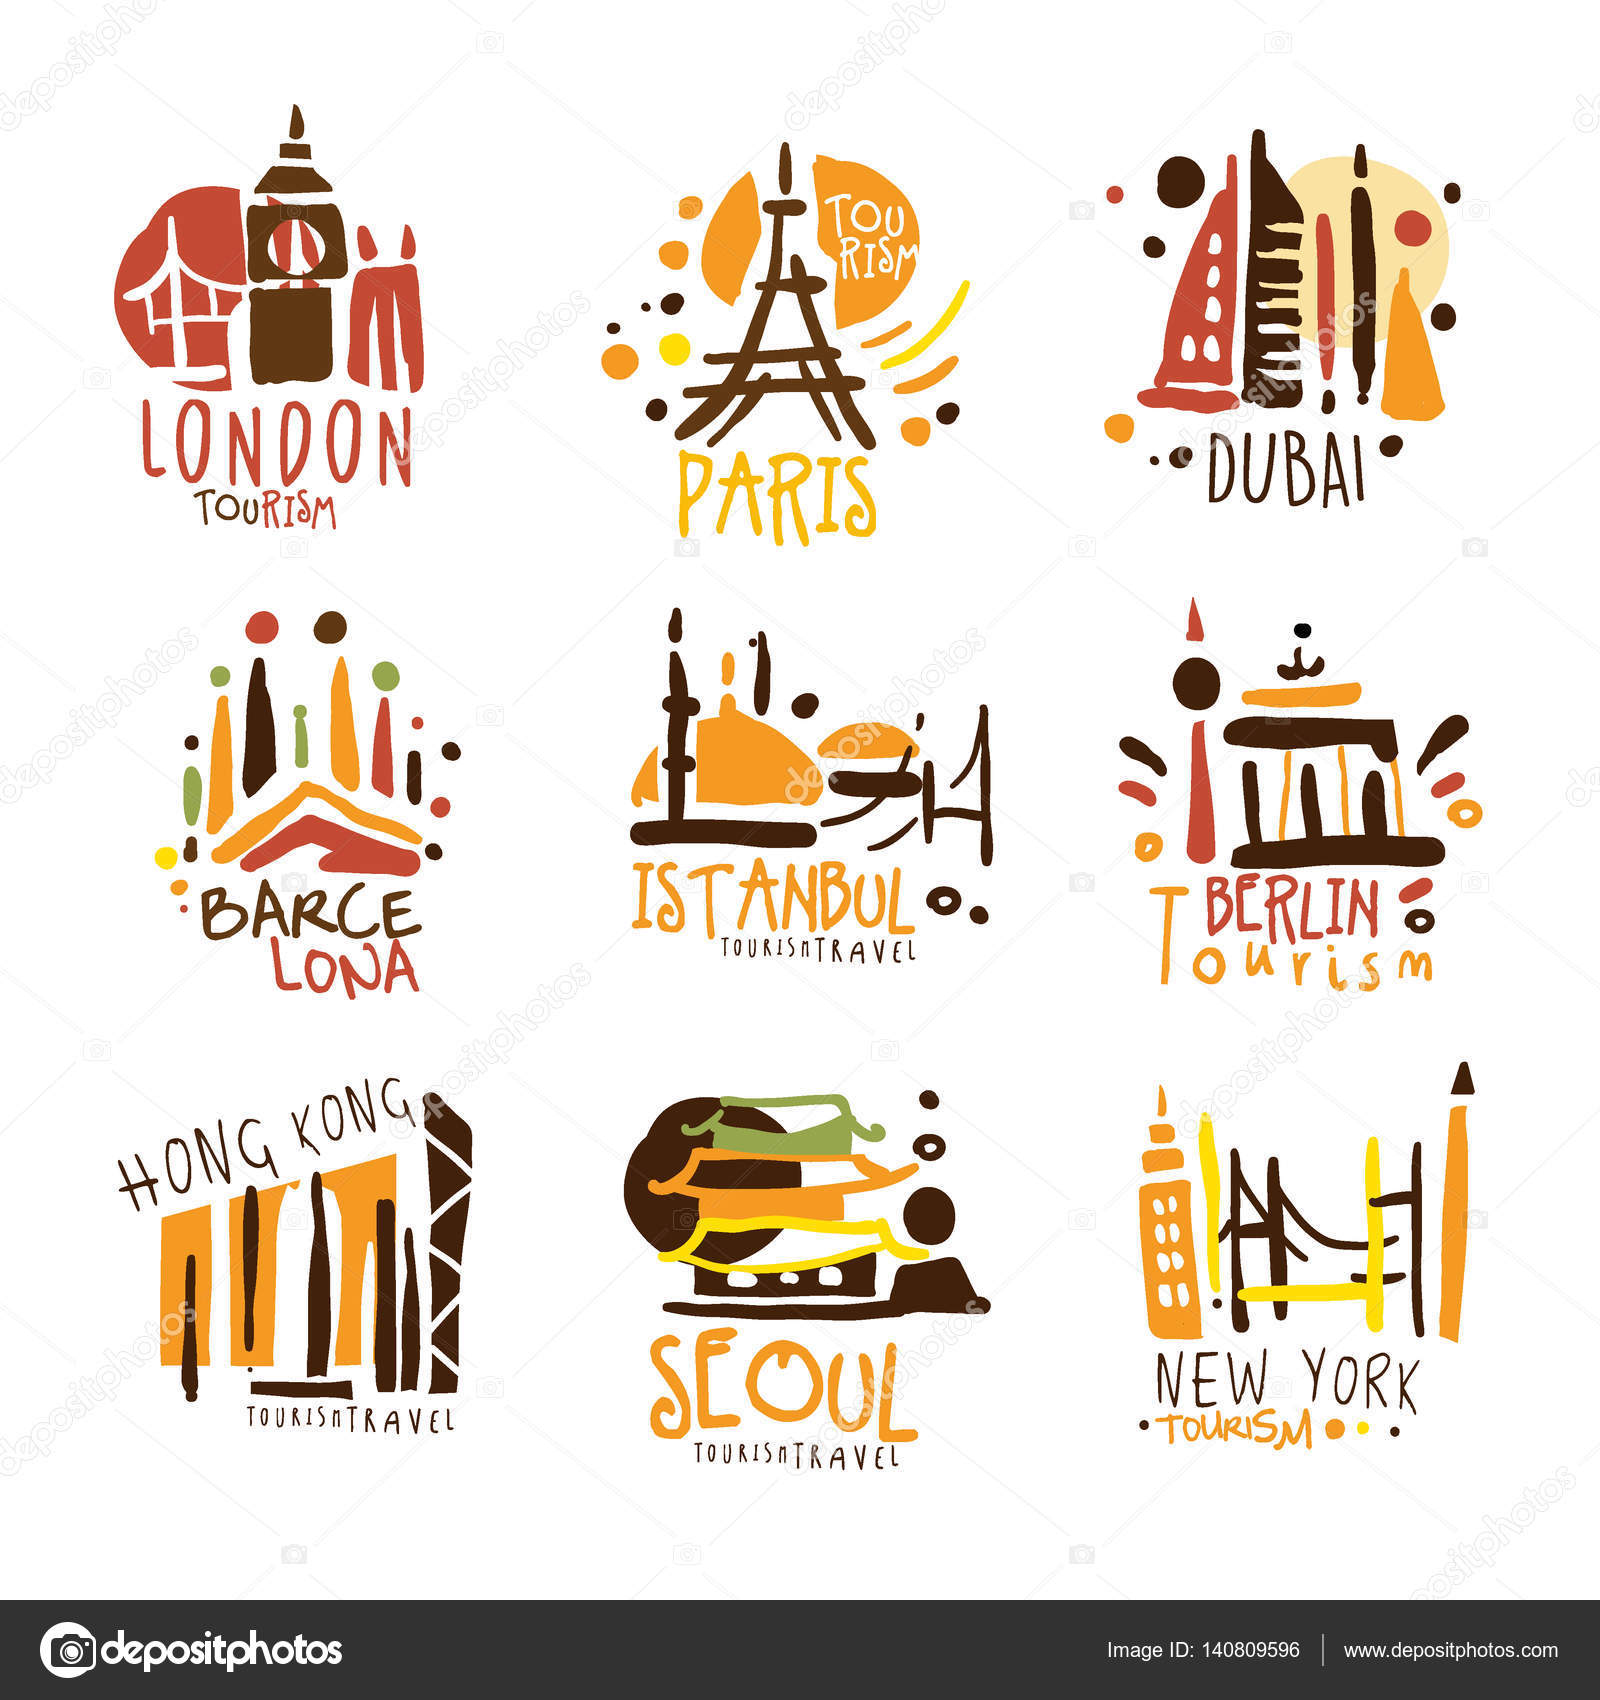 Touristic Travel Agency Set Of Colorful Promo Sign Design Templates With Different Tourism Cities And Their